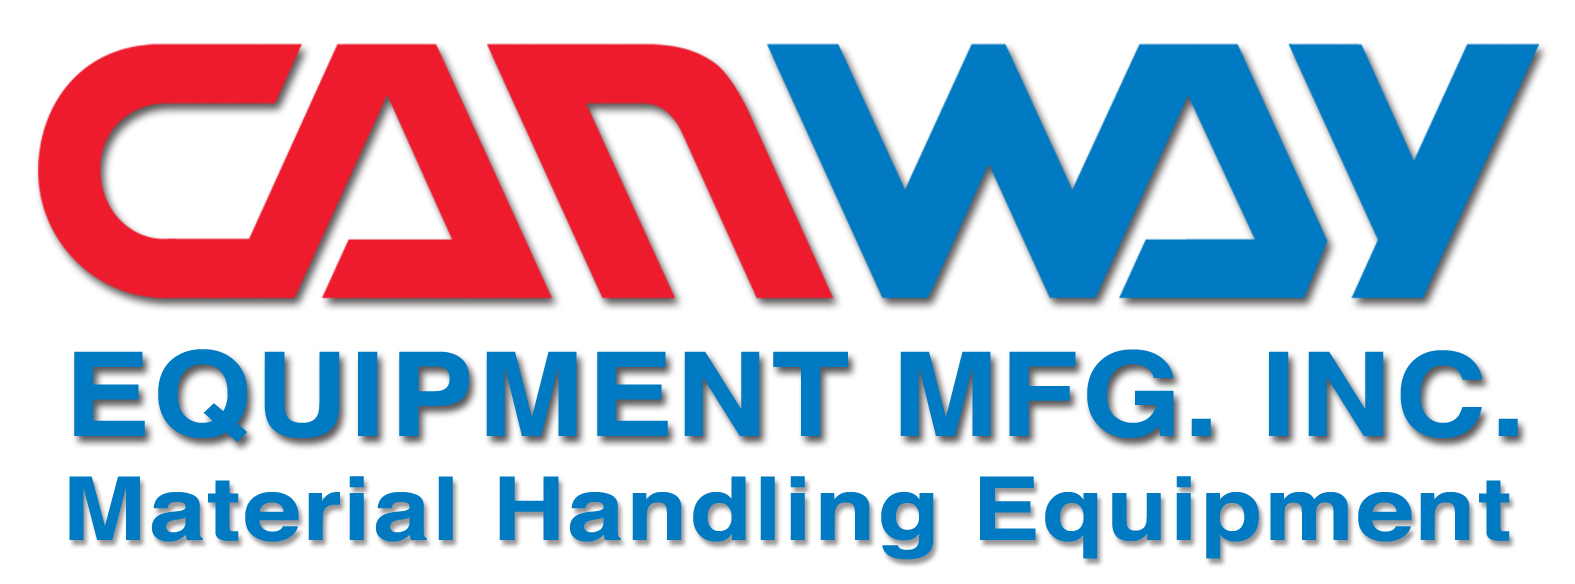 Canway Equipment Manufacturing Inc.